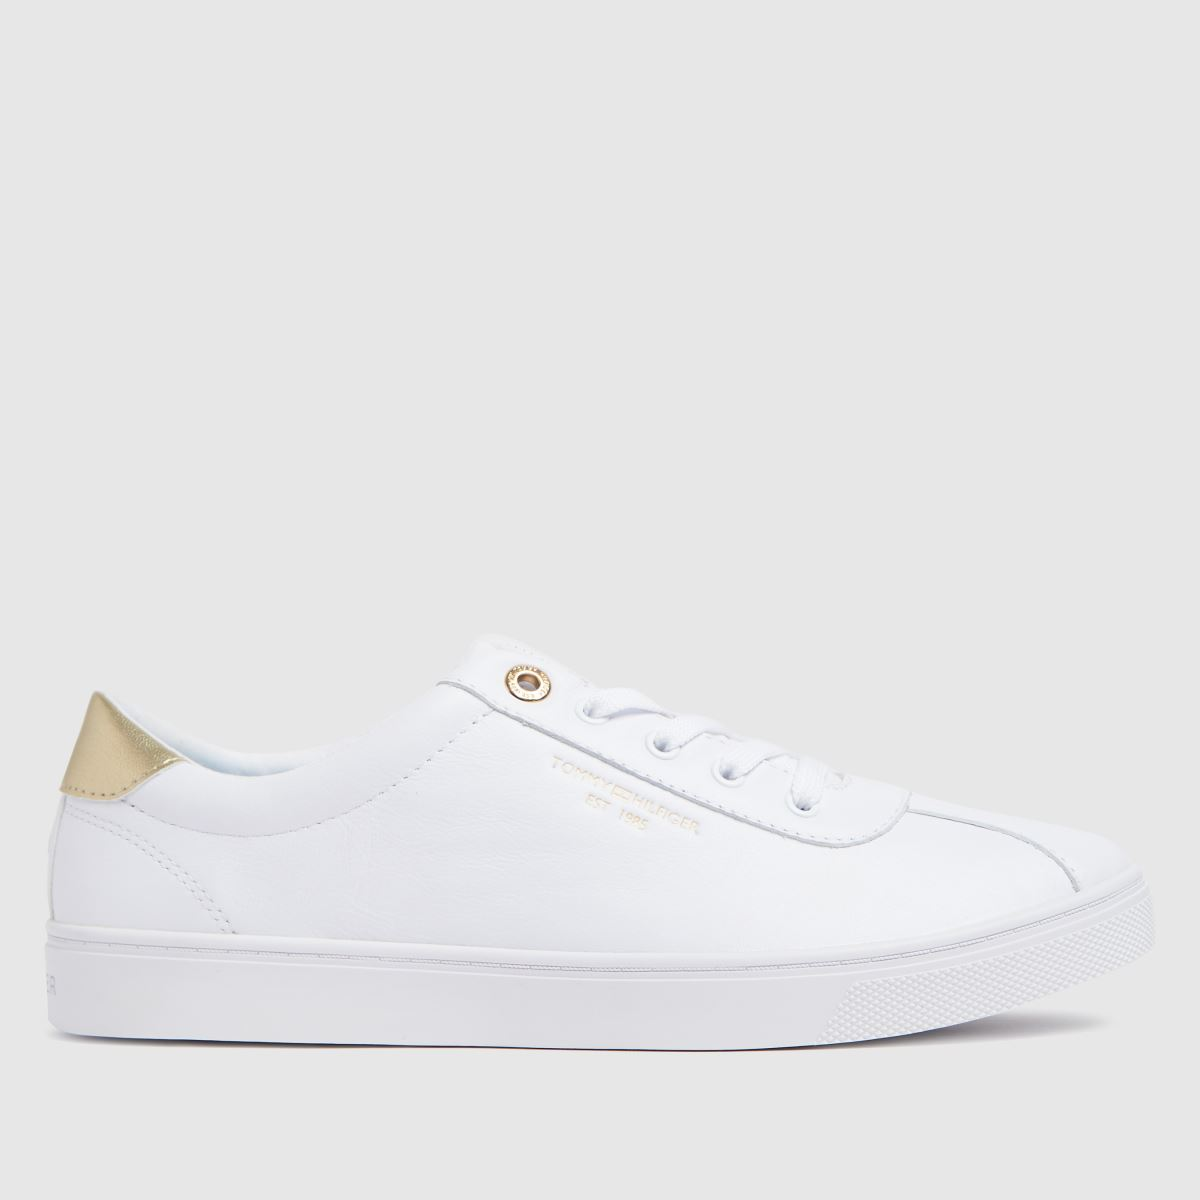 Tommy Hilfiger White & Gold Court Trainers